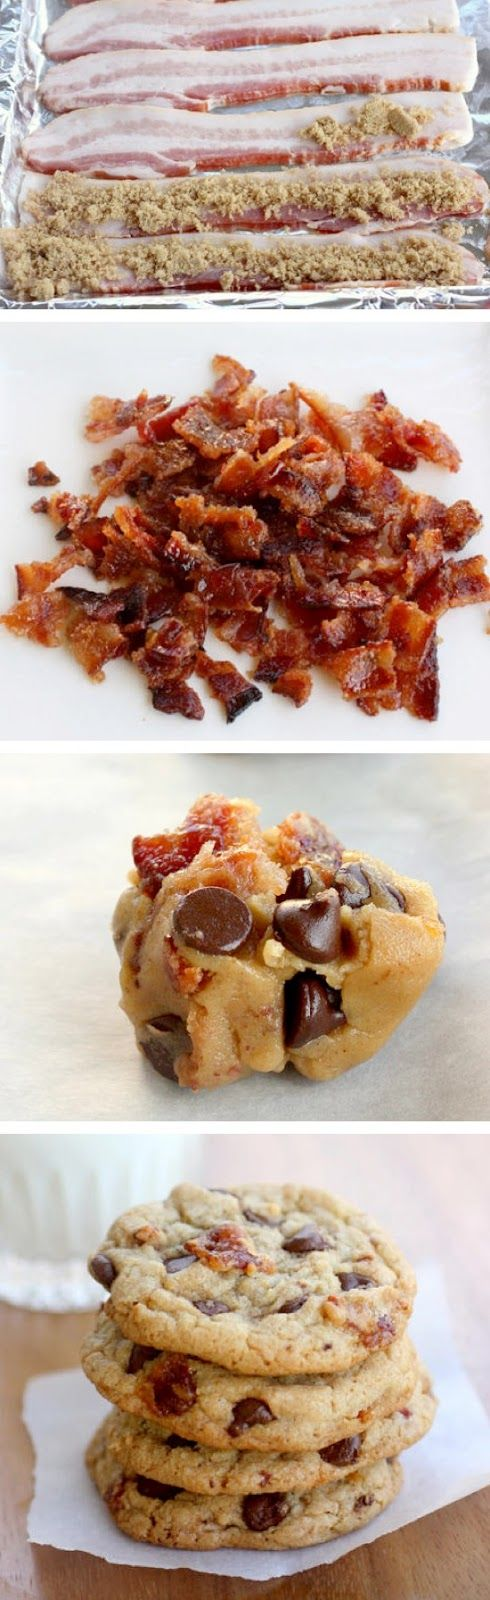 Candied Bacon Chocolate Chip Cookies. Soooooo good, no changes necessary. I made these with the mini chocolate chips, and I must say these are the best chocolate chip cookies I've ever heard. The bacon just takes them to a while new level!